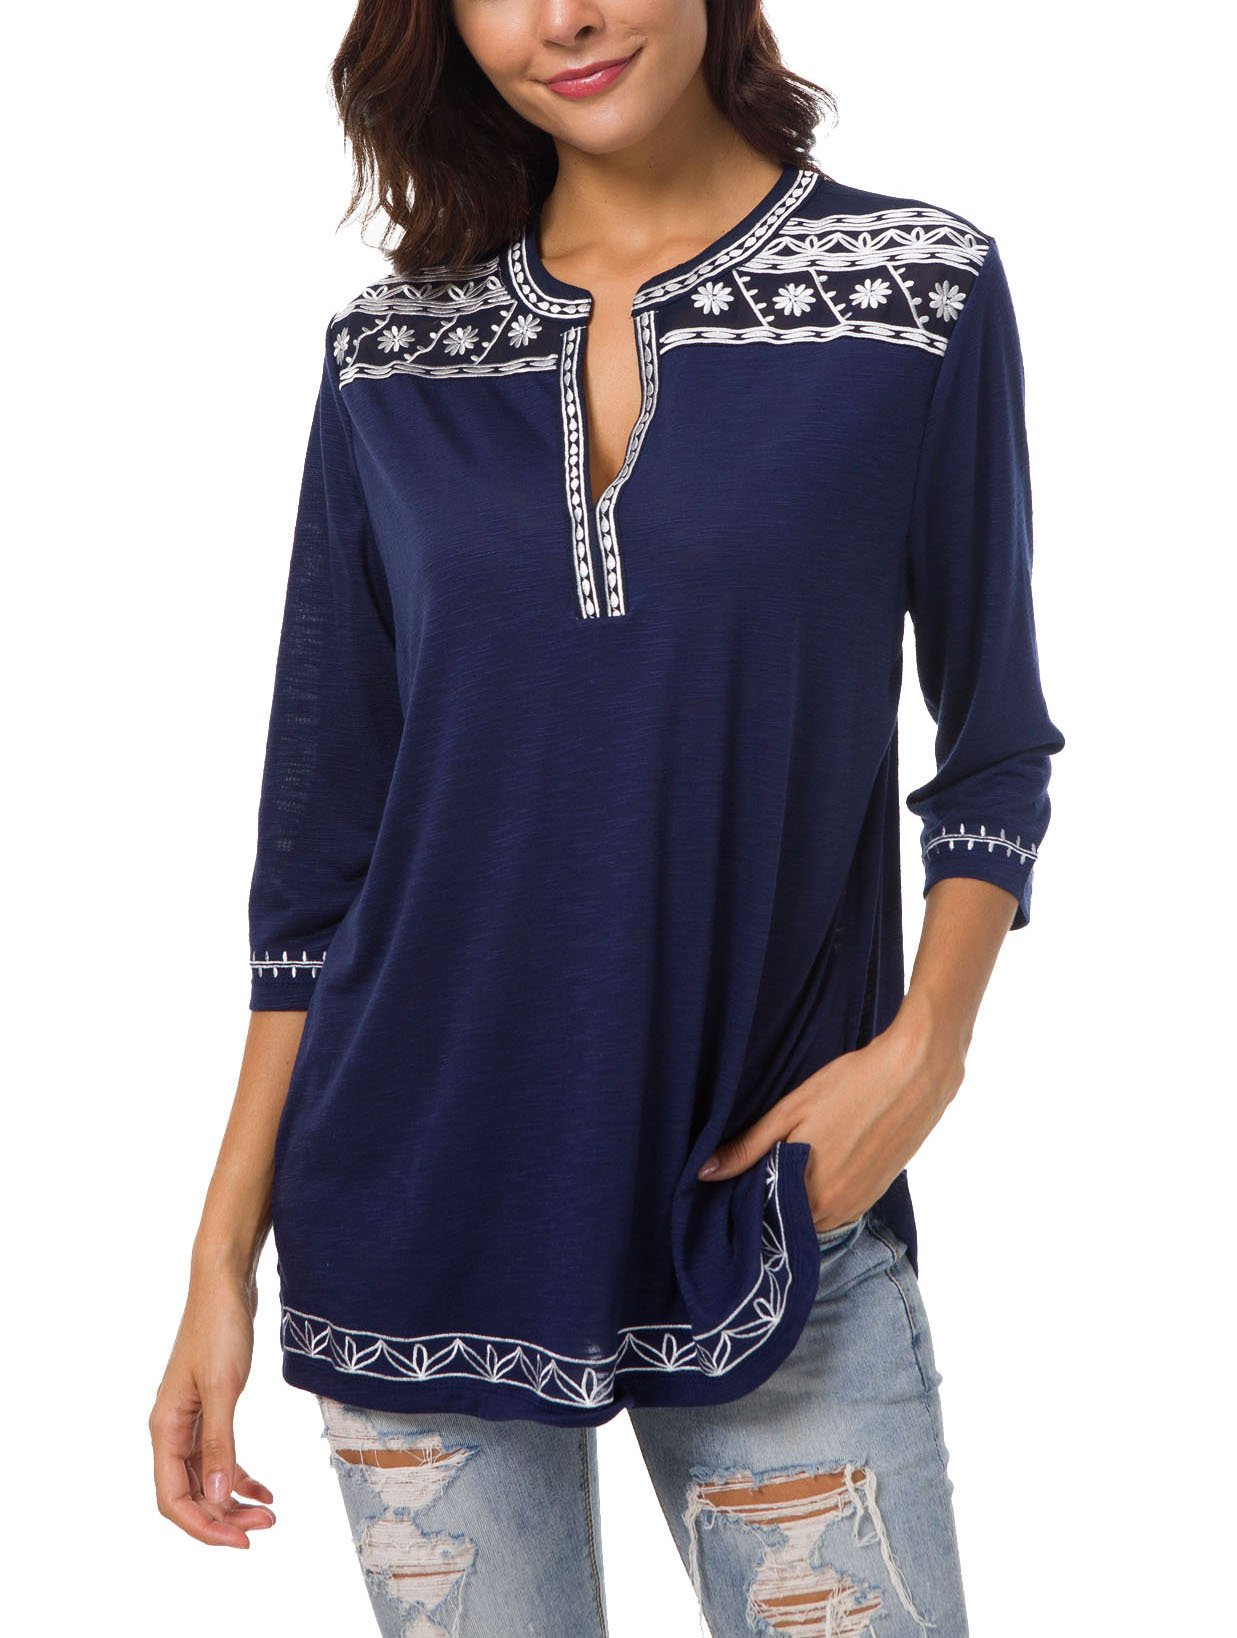 Urban CoCo Women's 3/4 Sleeve Boho Shirts Embroidered Peasant Top (XL, Navy Blue)